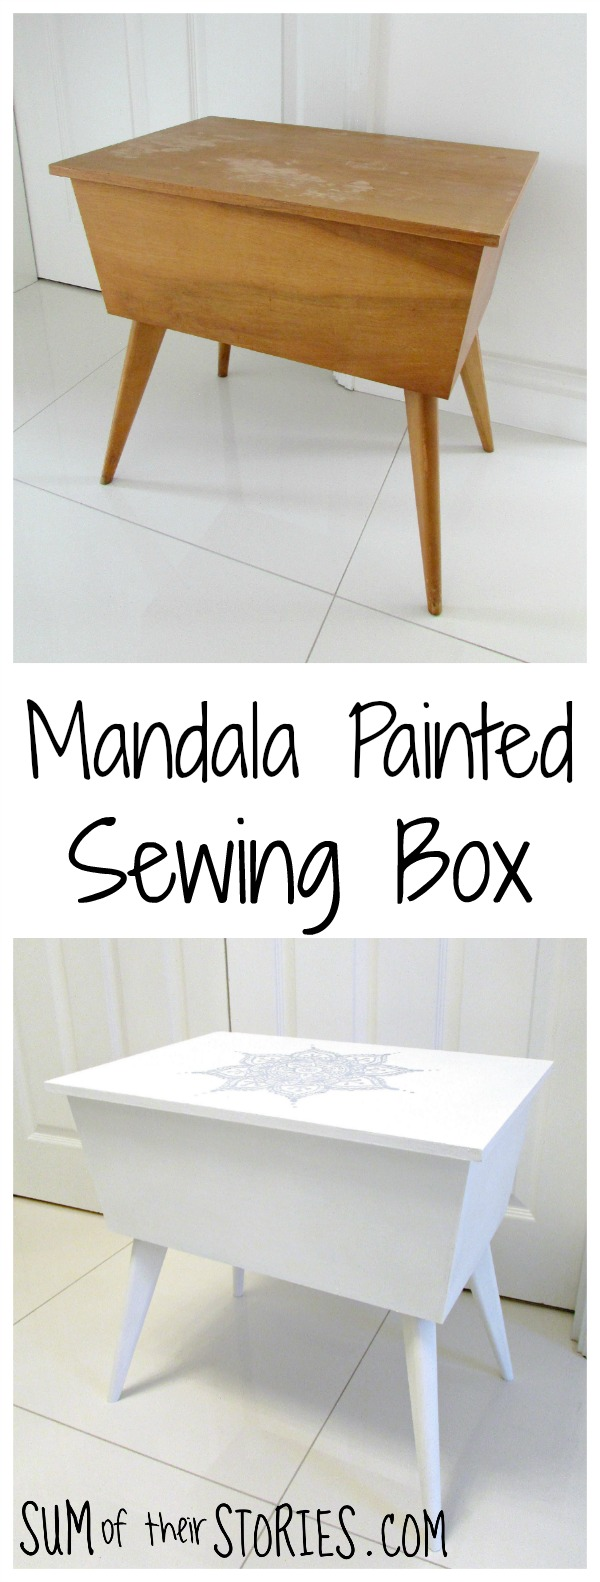 Mandala Painted Sewing Box